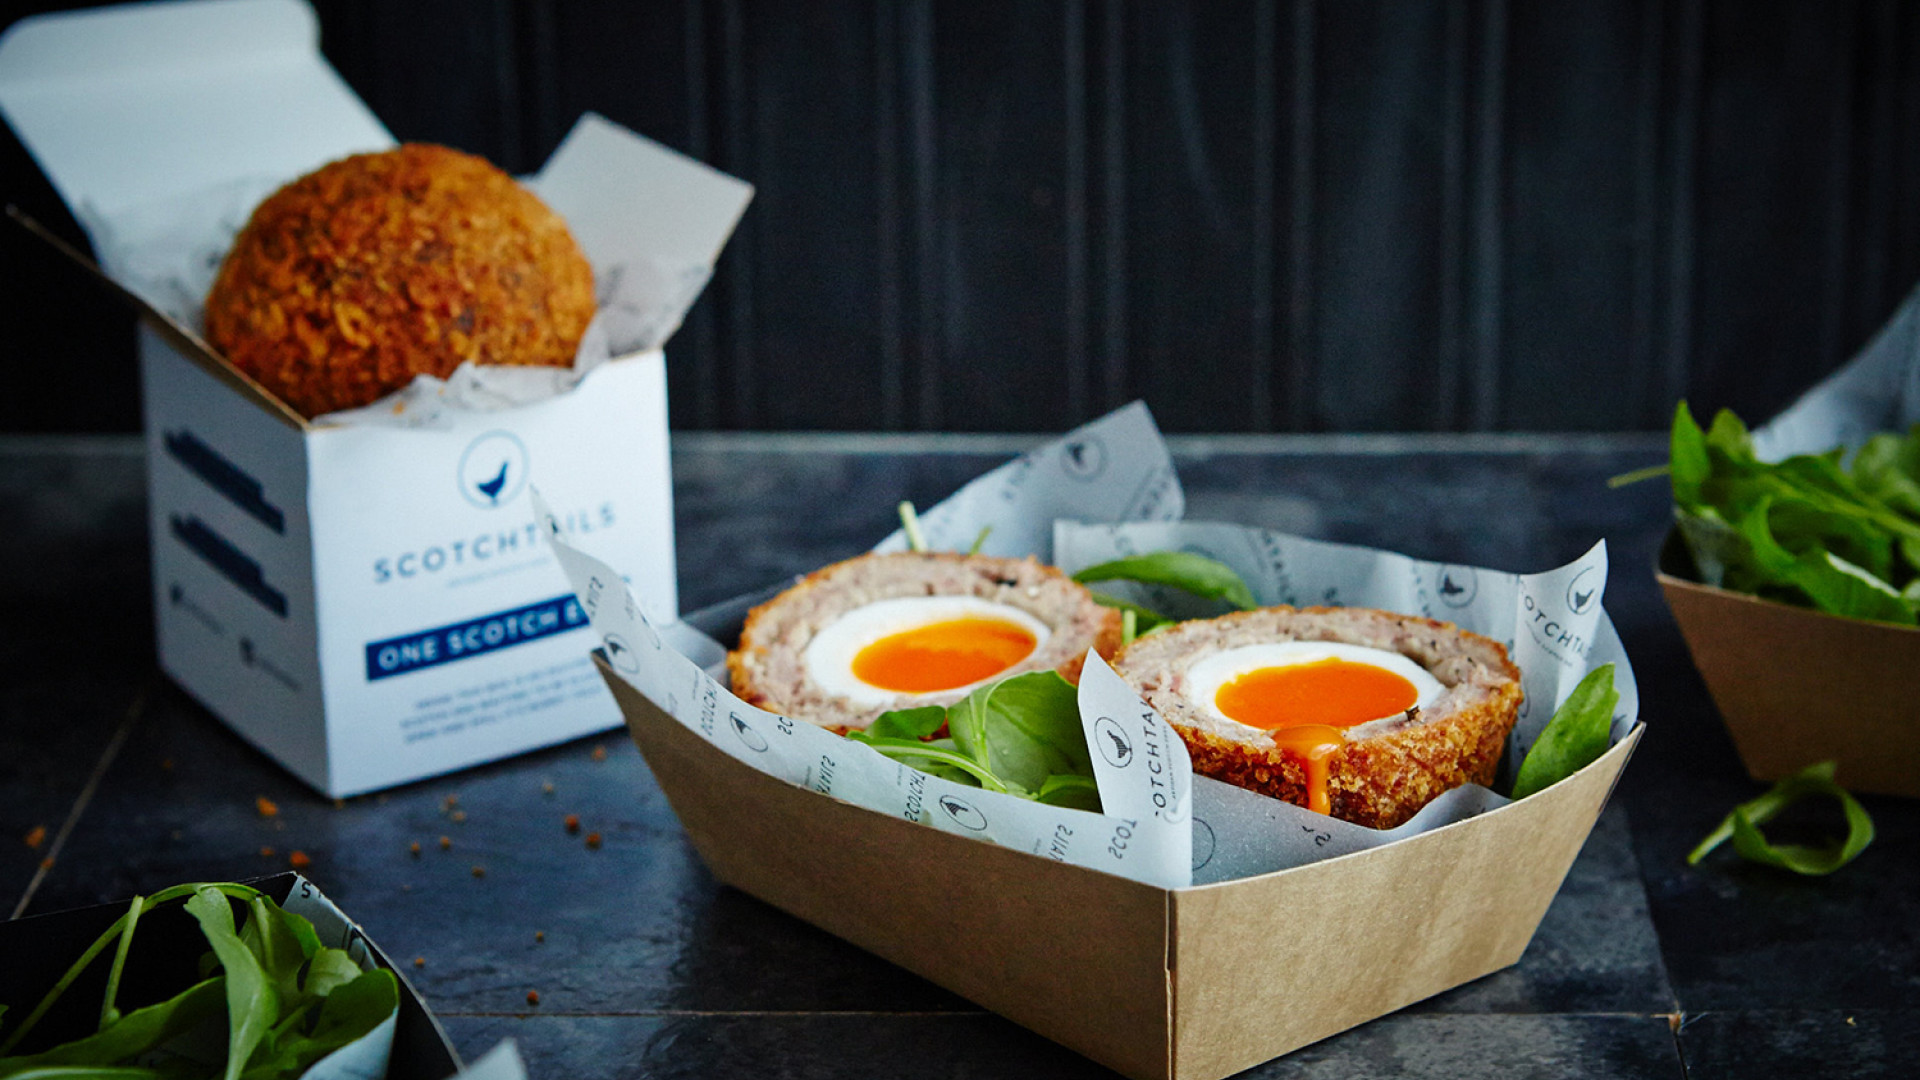 New-school scotch eggs: Scotchtails